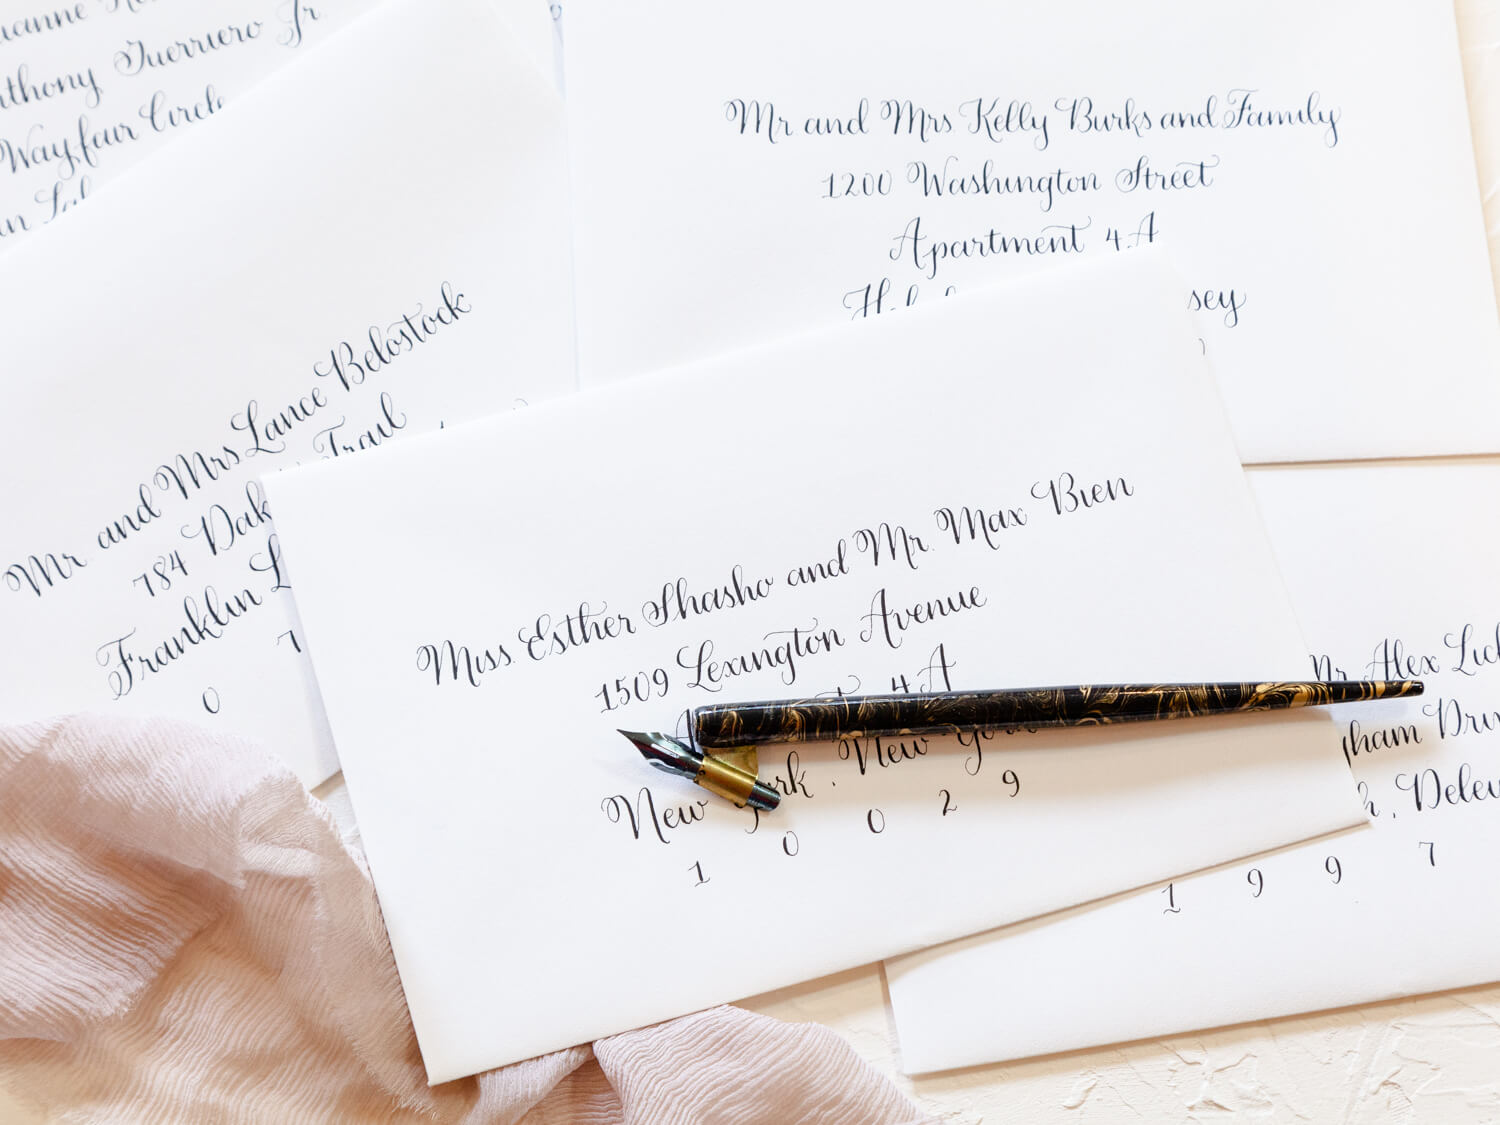 Calligraphy - We offer professional hand calligraphy for envelope addressing and place cards. Calligraphy gives each envelope a personal, handwritten feel, giving your guests a warm welcoming from the very first moment.